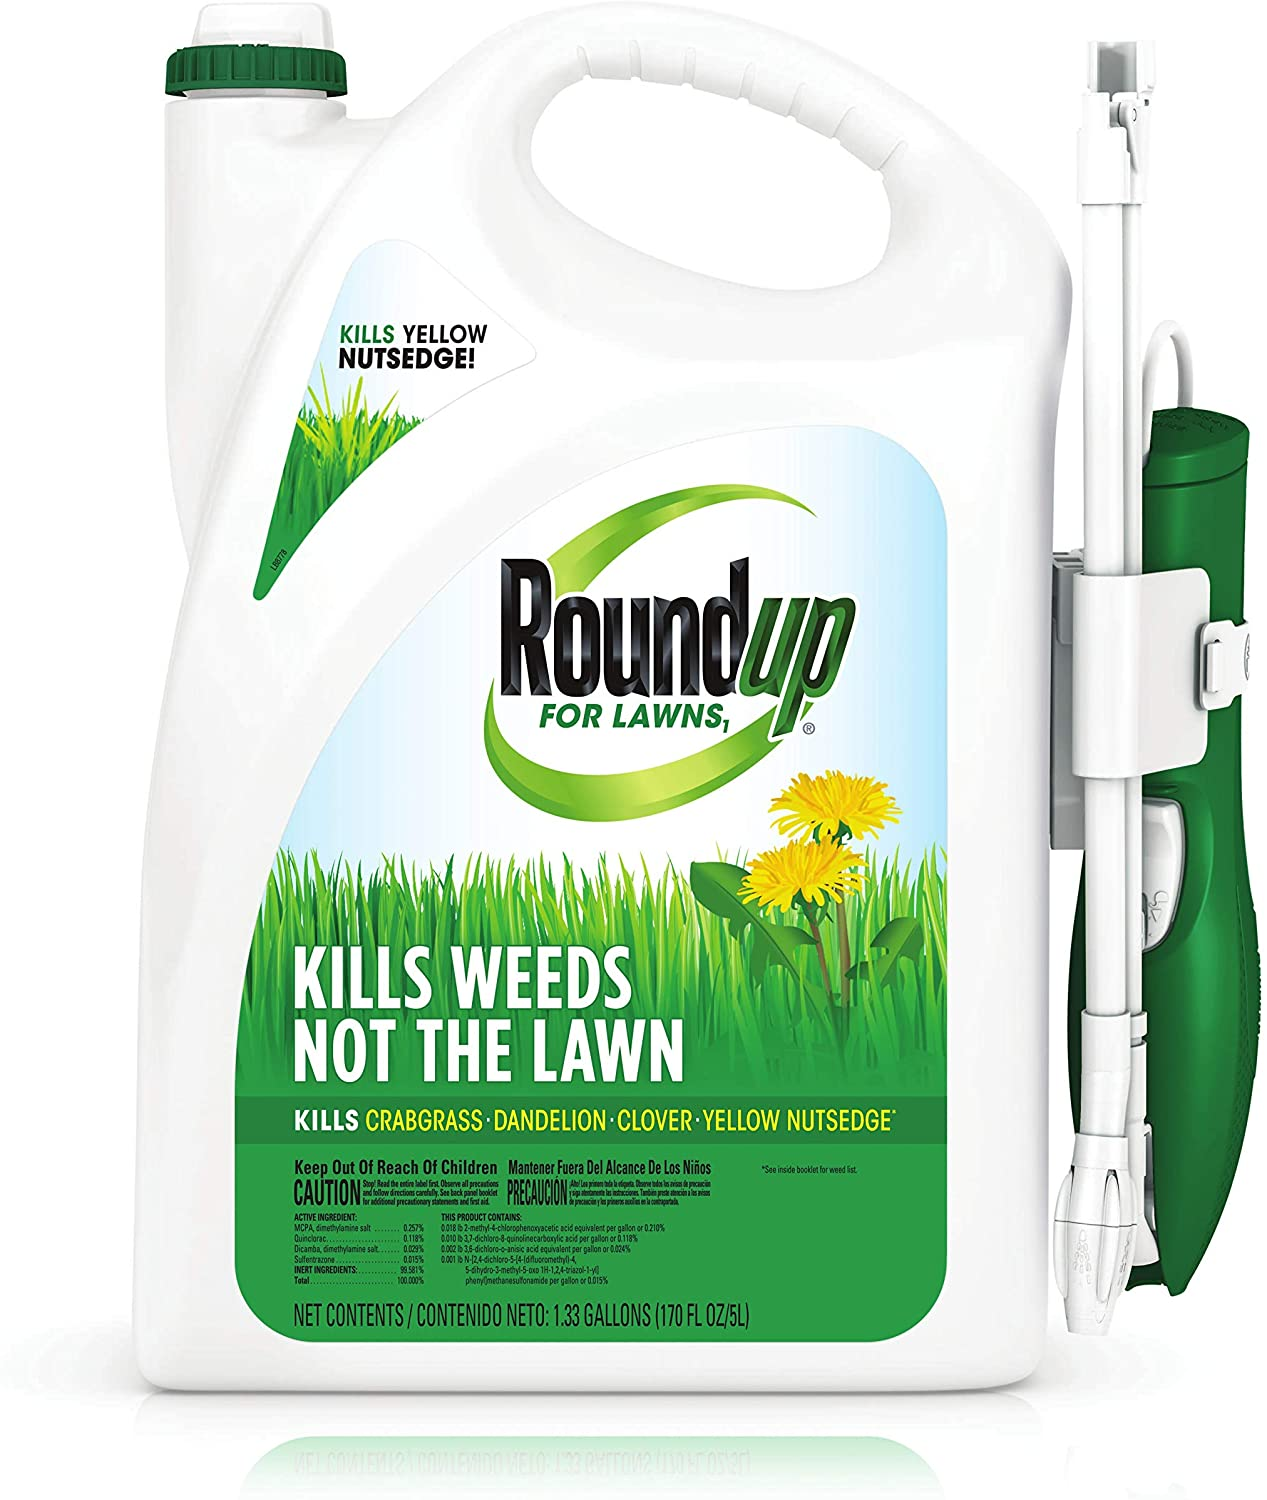 Roundup for Lawns